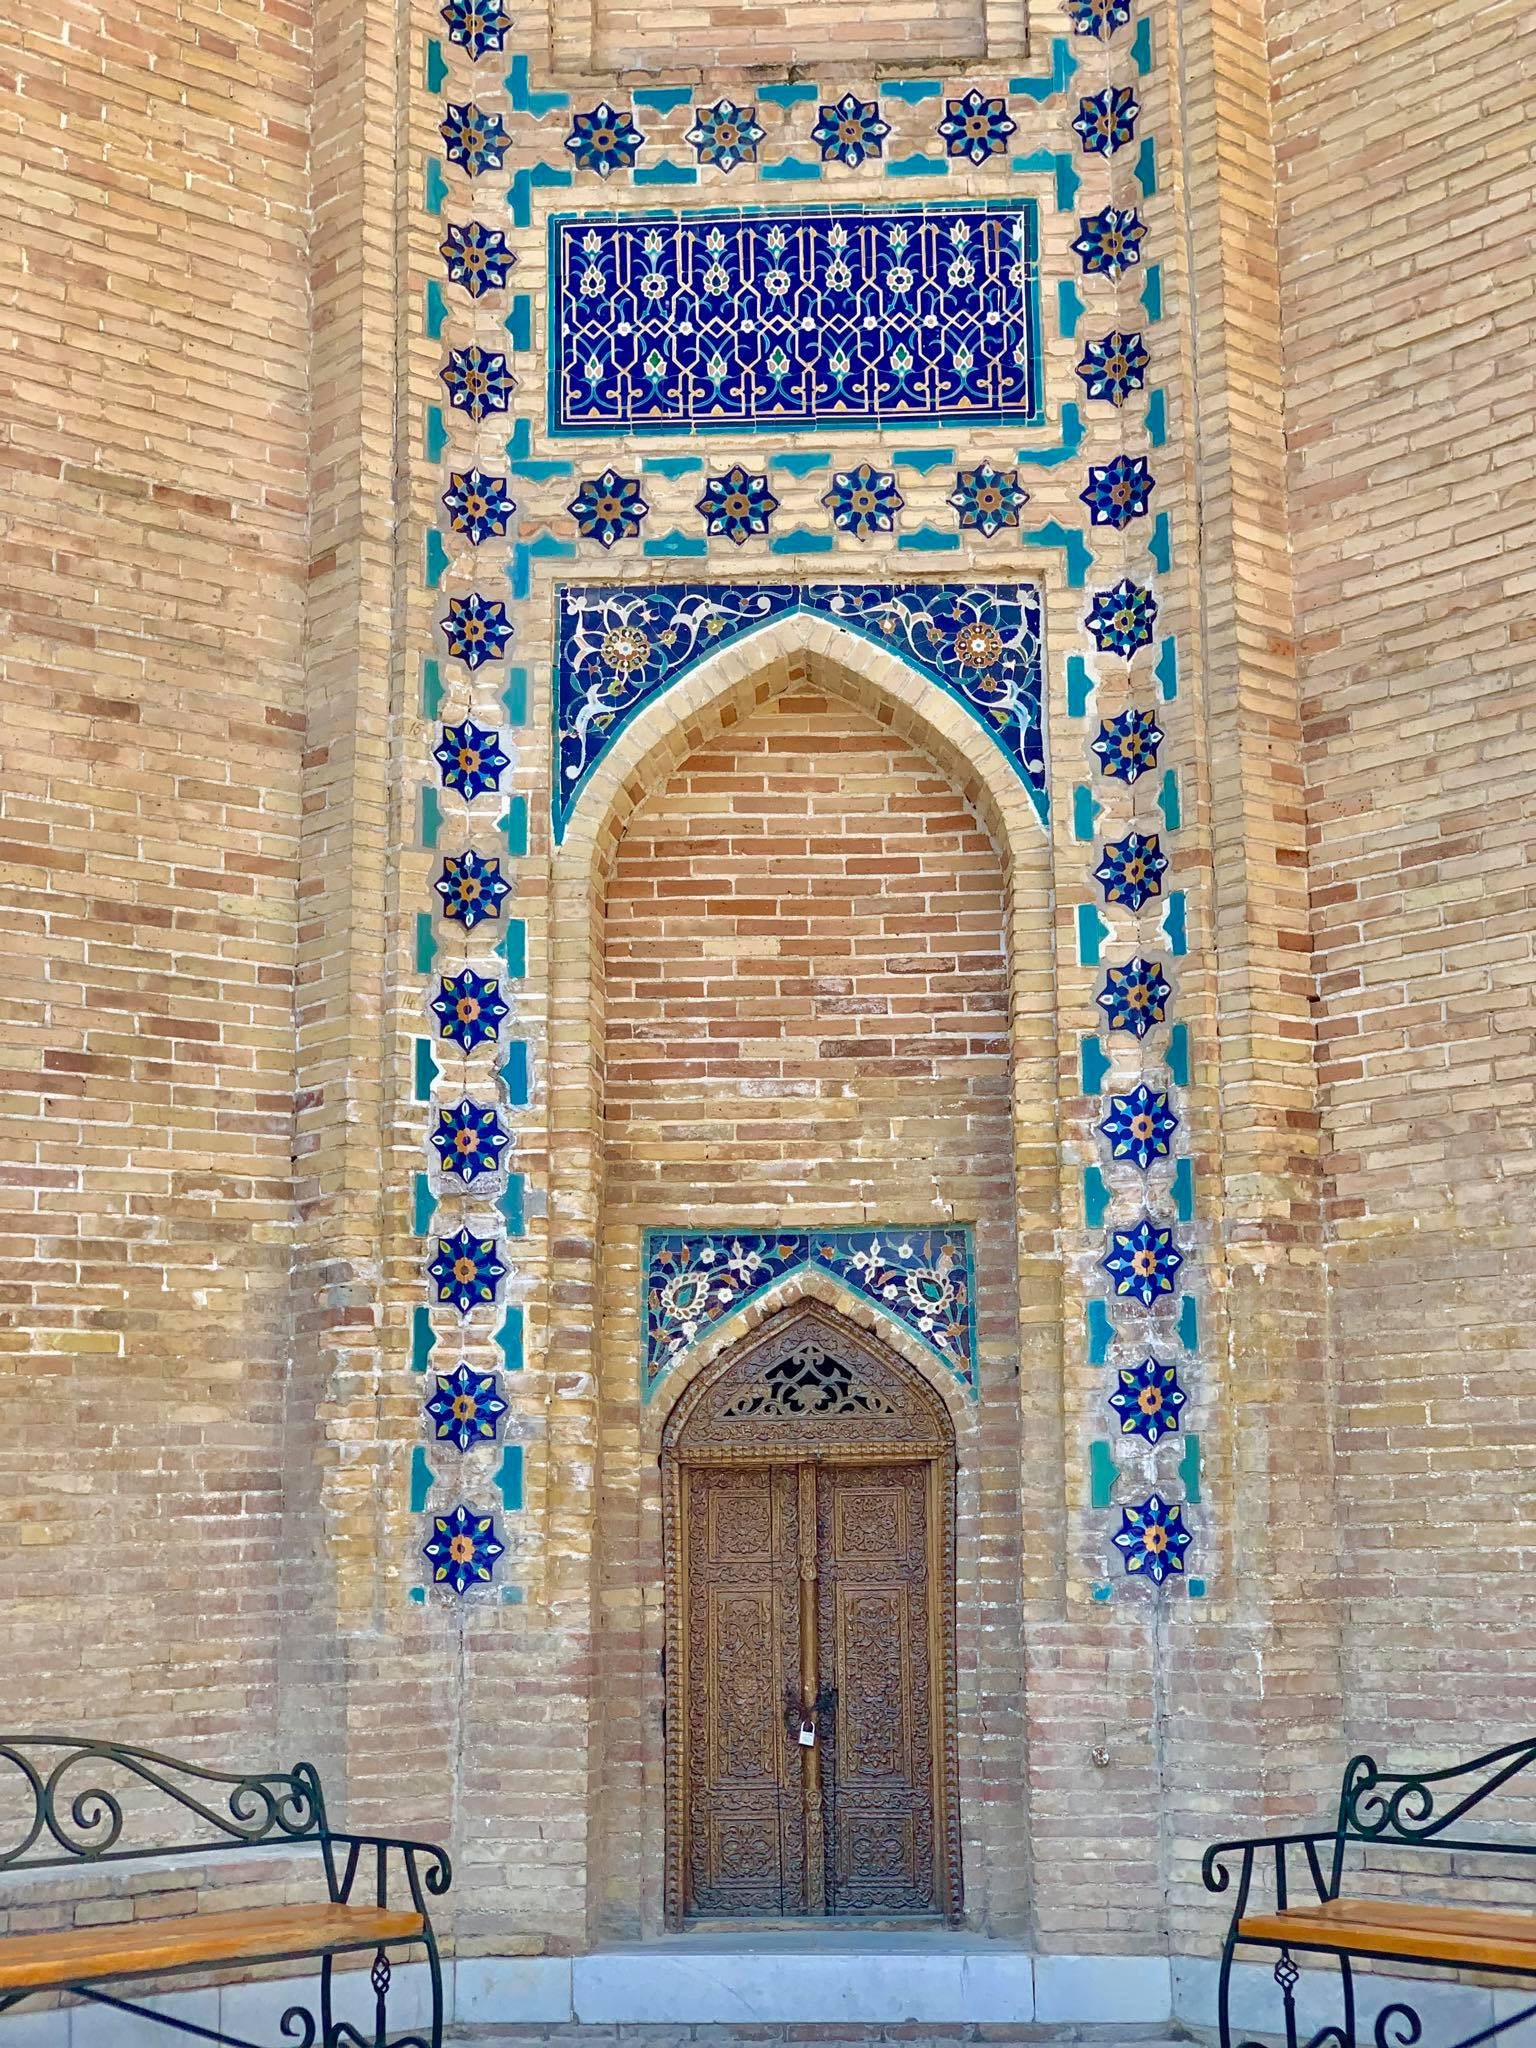 Kach Solo Travels in 2019 Hello from Samarqand  Samarkand in the southeastern part of Uzbekistan12.jpg